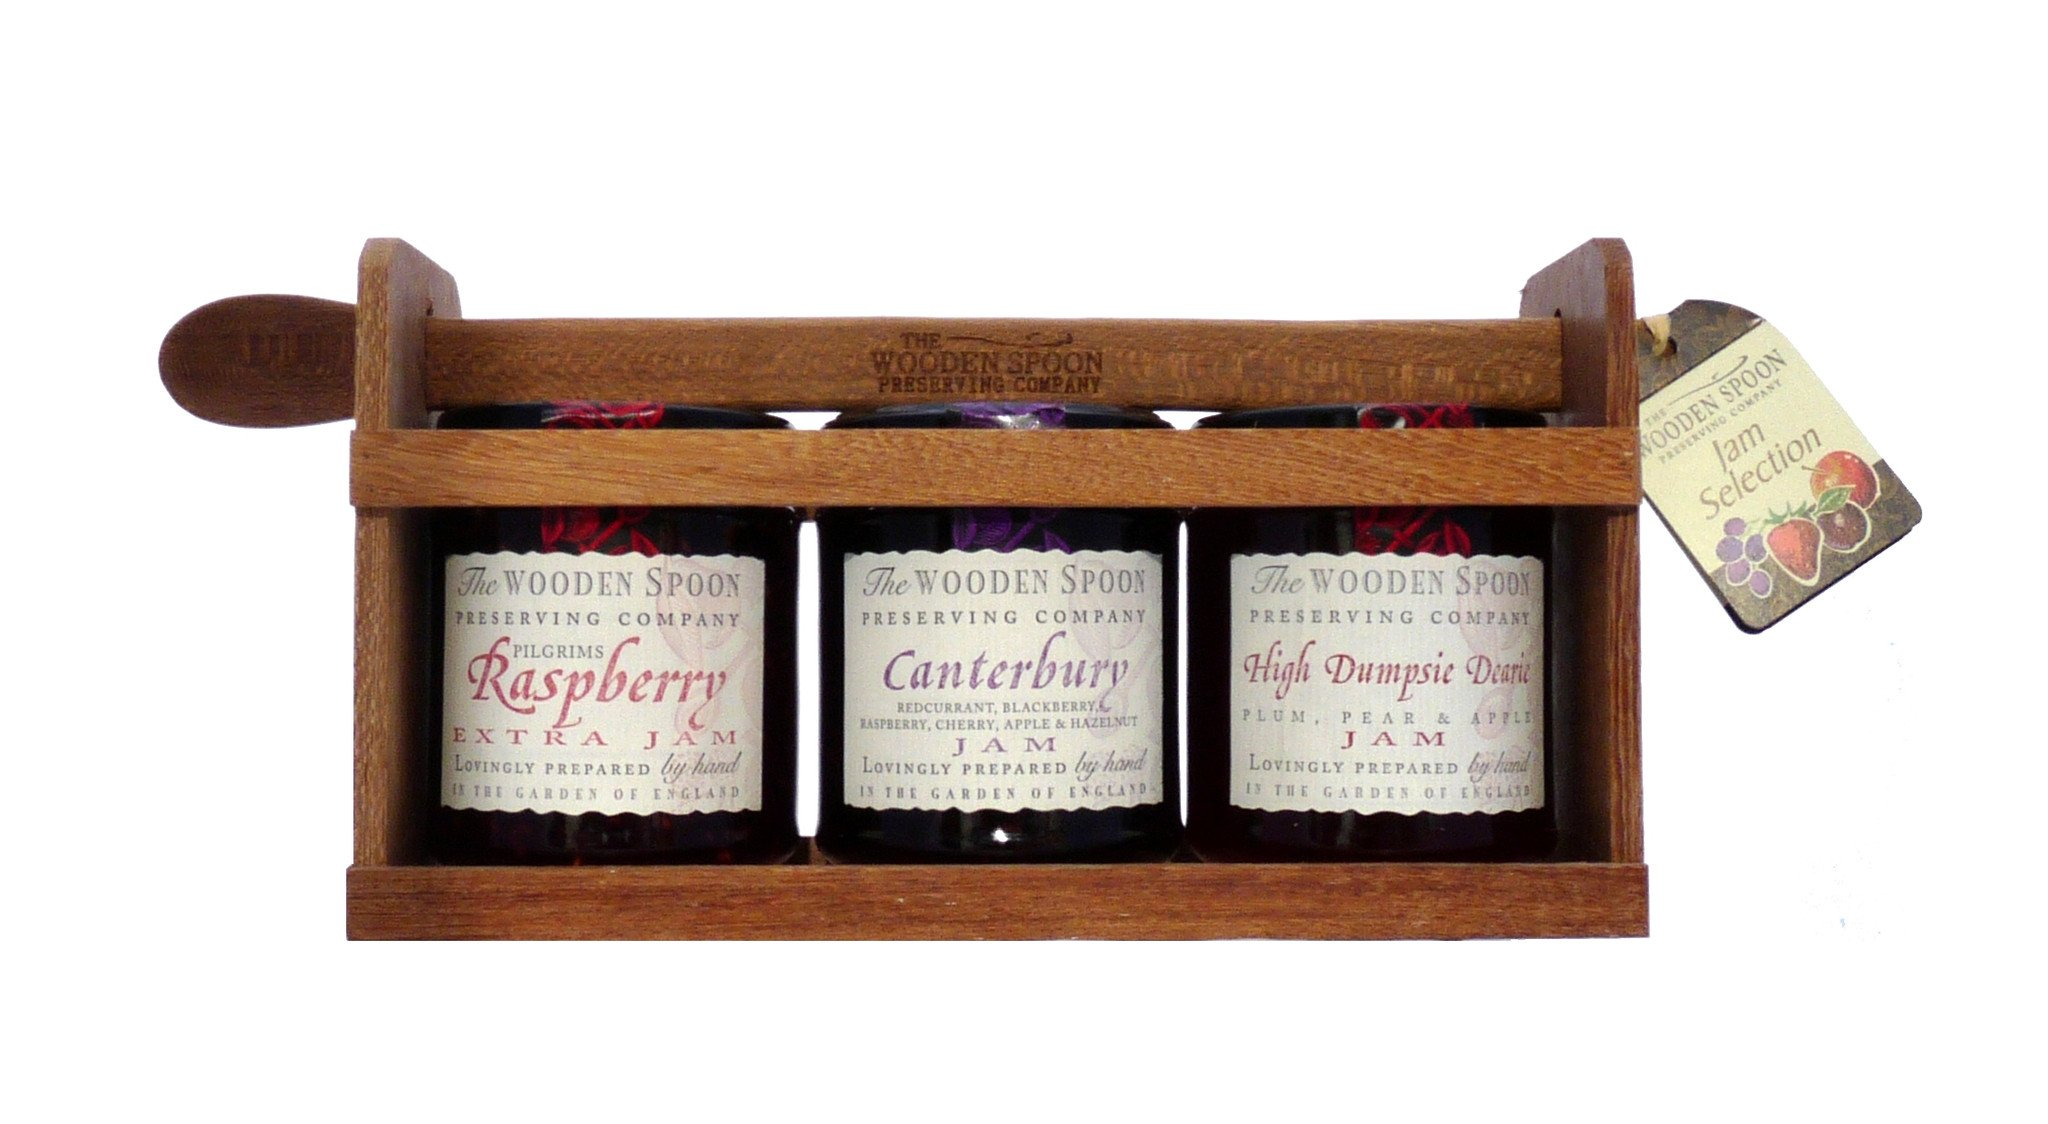 Jam Selection: Plum Pear & Apple Jam, Rapberry Extra Jam, Canterbury Extra Jam 3 x 340g